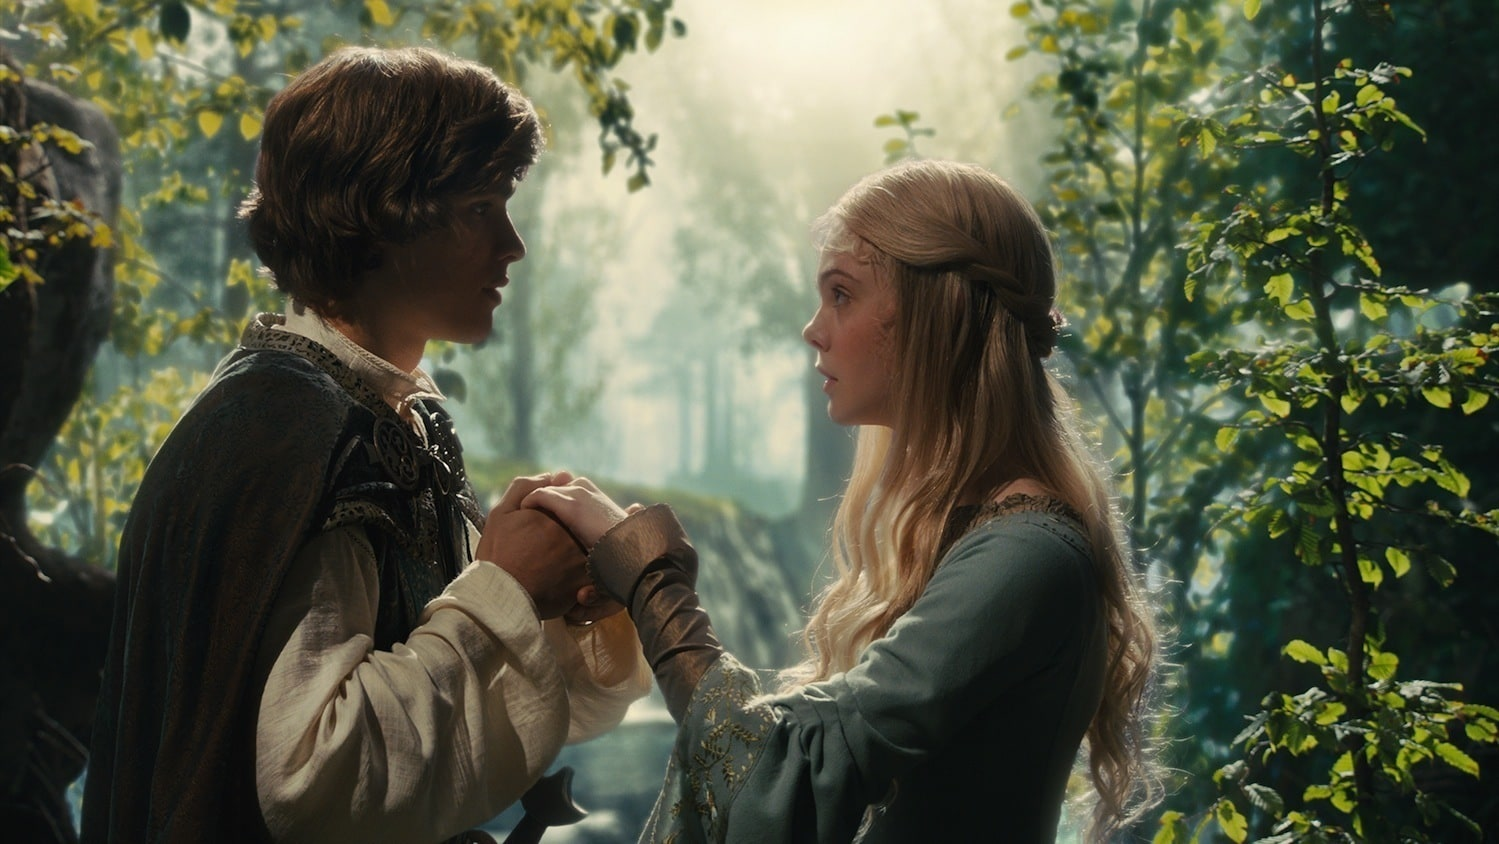 """Elle Fanning as Aurora and Brenton Thwaites as Prince Phillip holding hands surrounded by trees in """"Maleficent"""""""